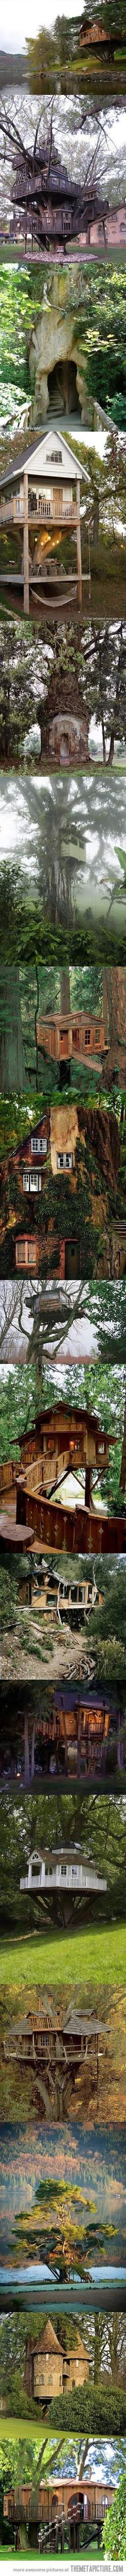 these treehouses are awesome.